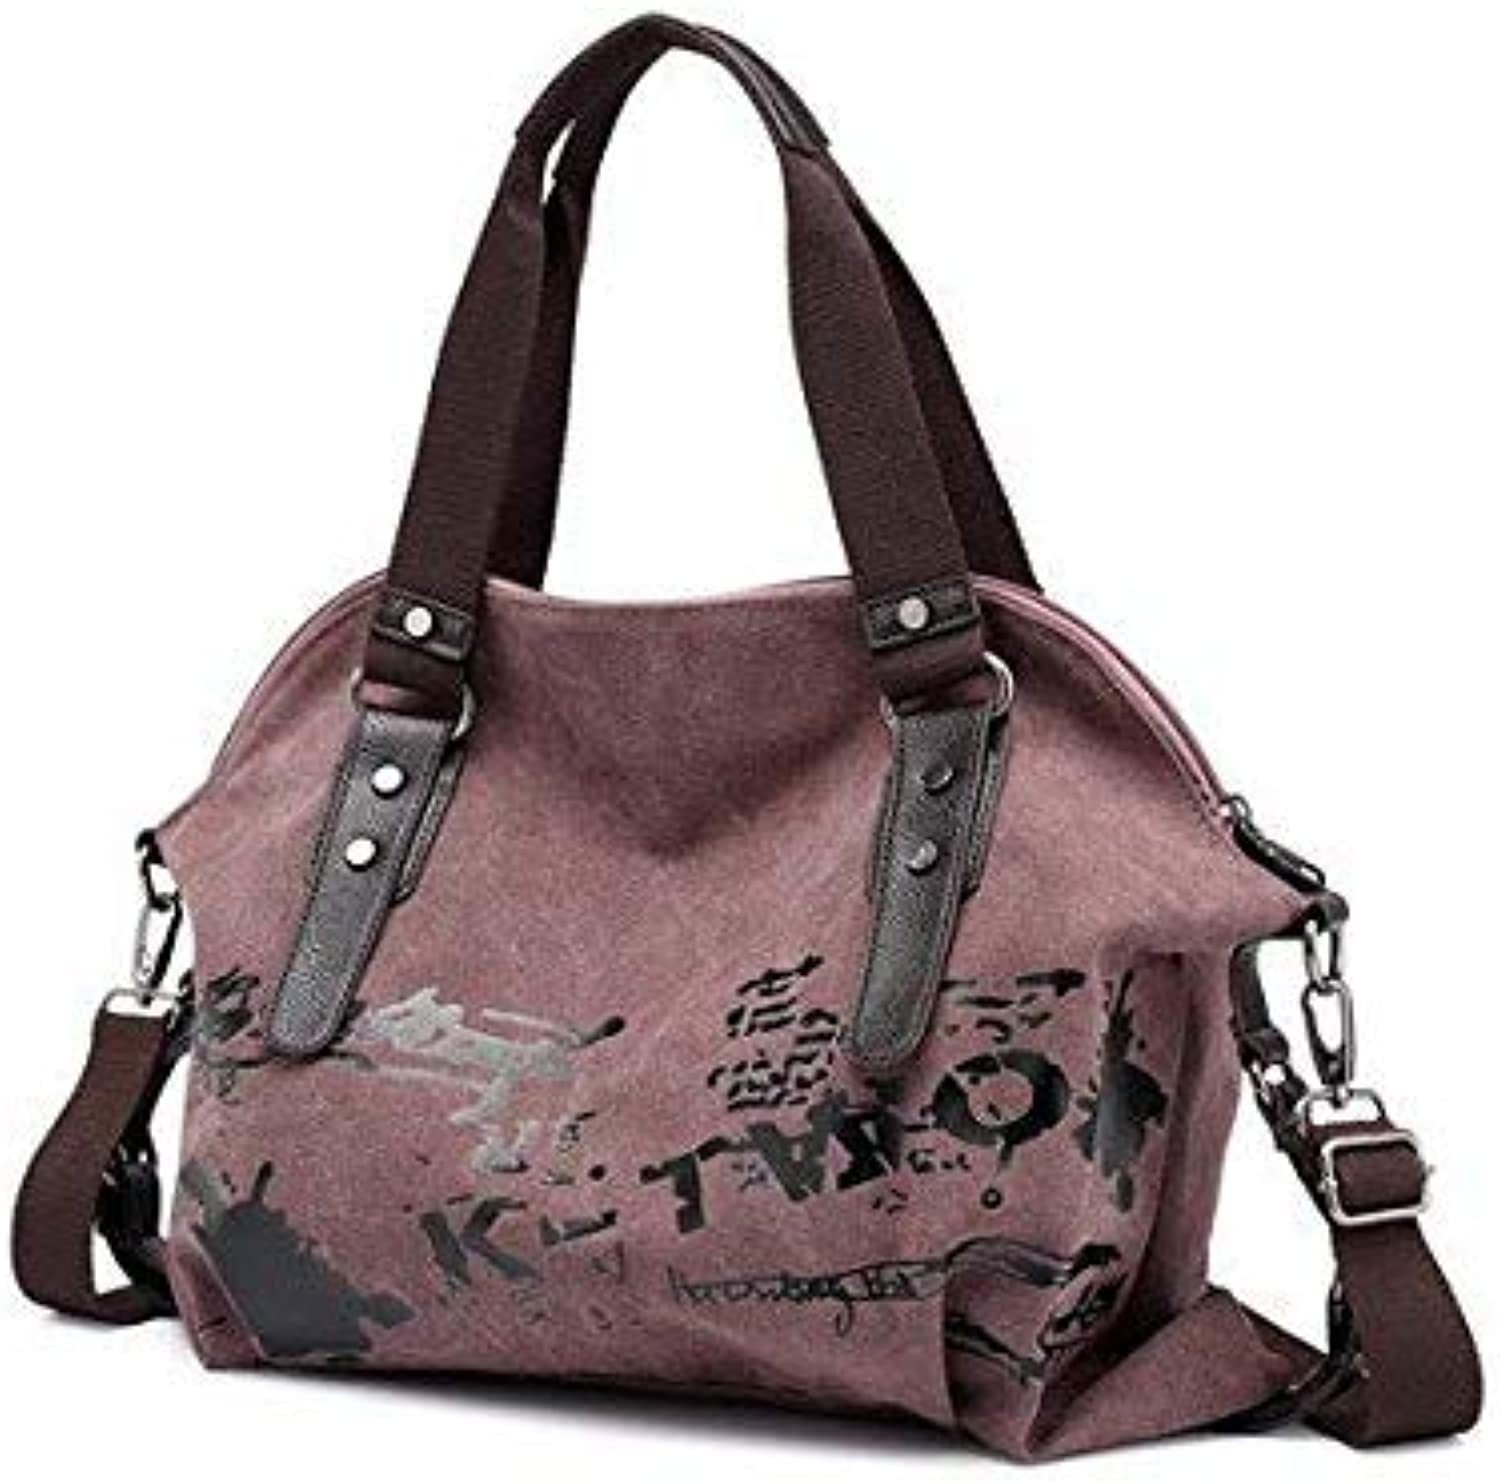 Bloomerang Women's Shoulder Bags Vintage Graffiti Canvas Handbags Famous Designer Female Shoulder Bags Ladies Totes Fashion Large Handbags color Purple 49x12x35cm